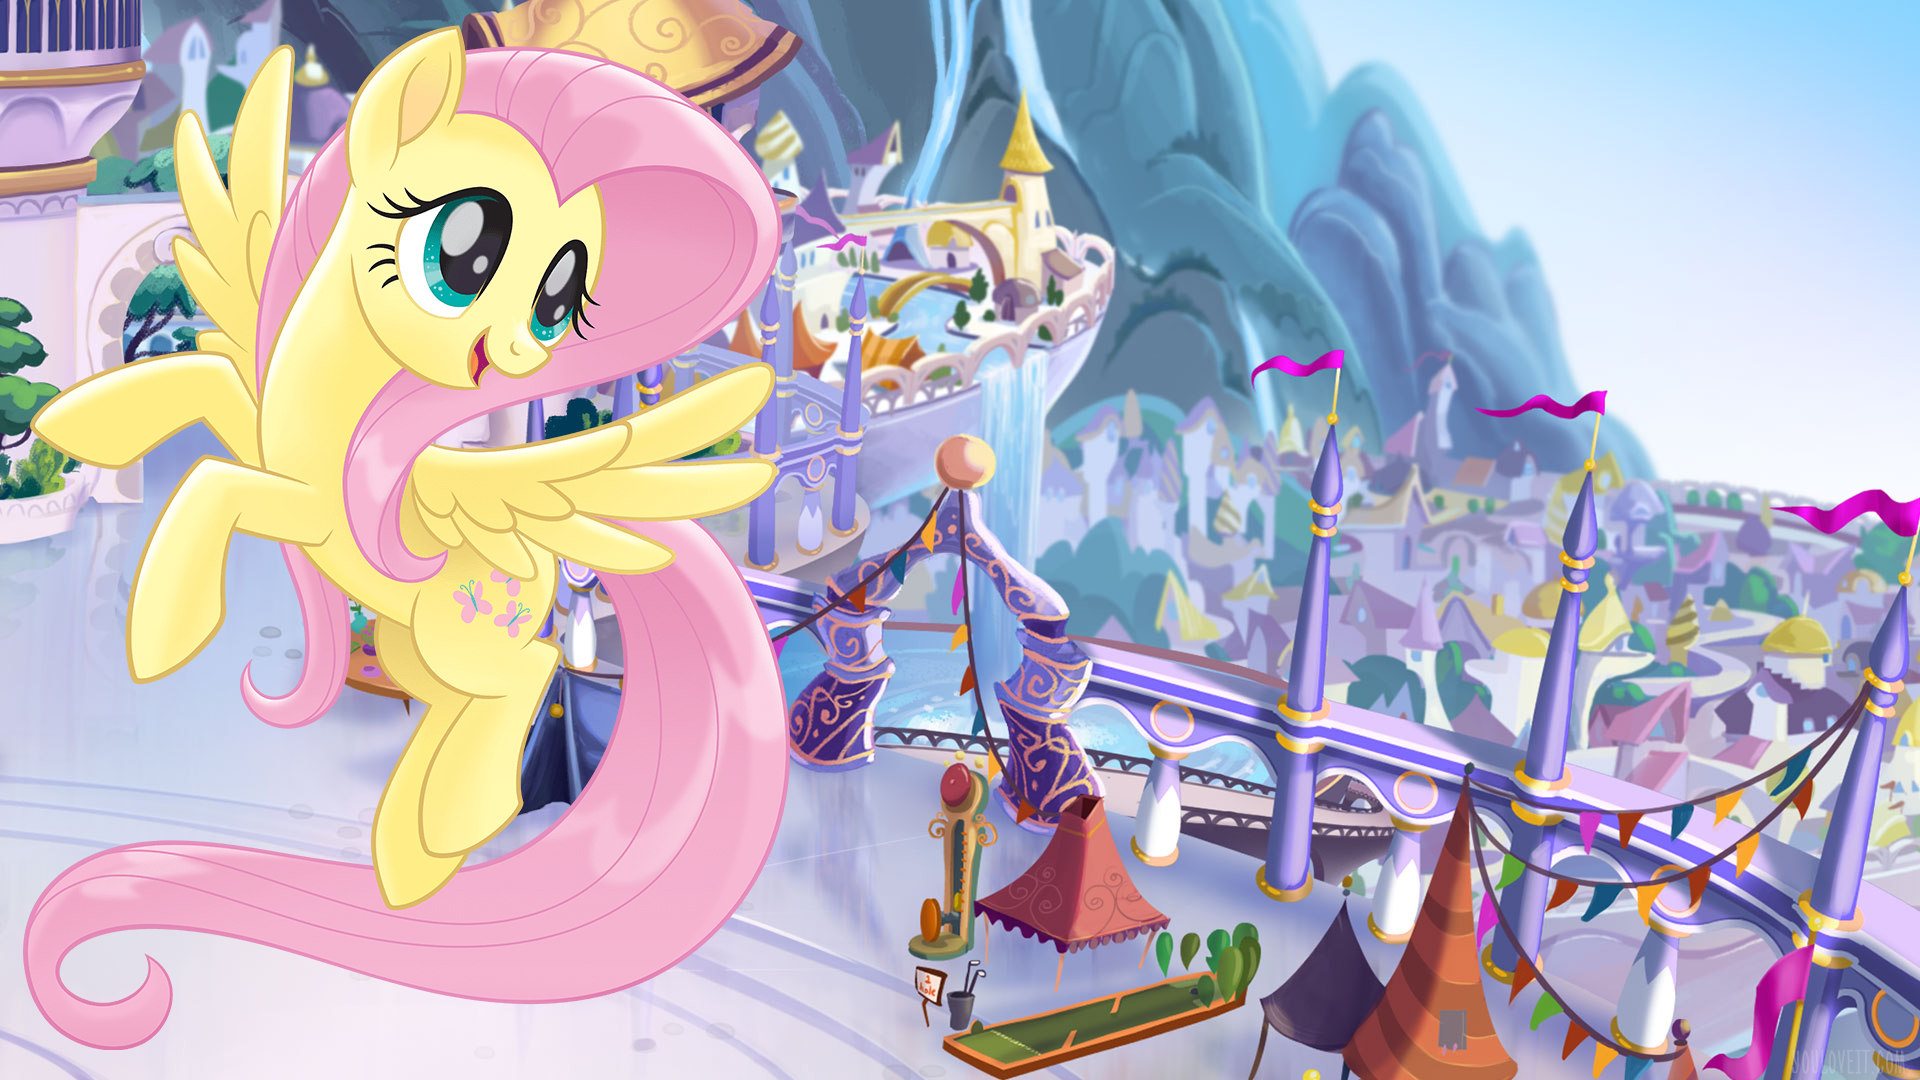 Cute Wallpapers Love Friendship My Little Pony The Movie Wallpapers Youloveit Com